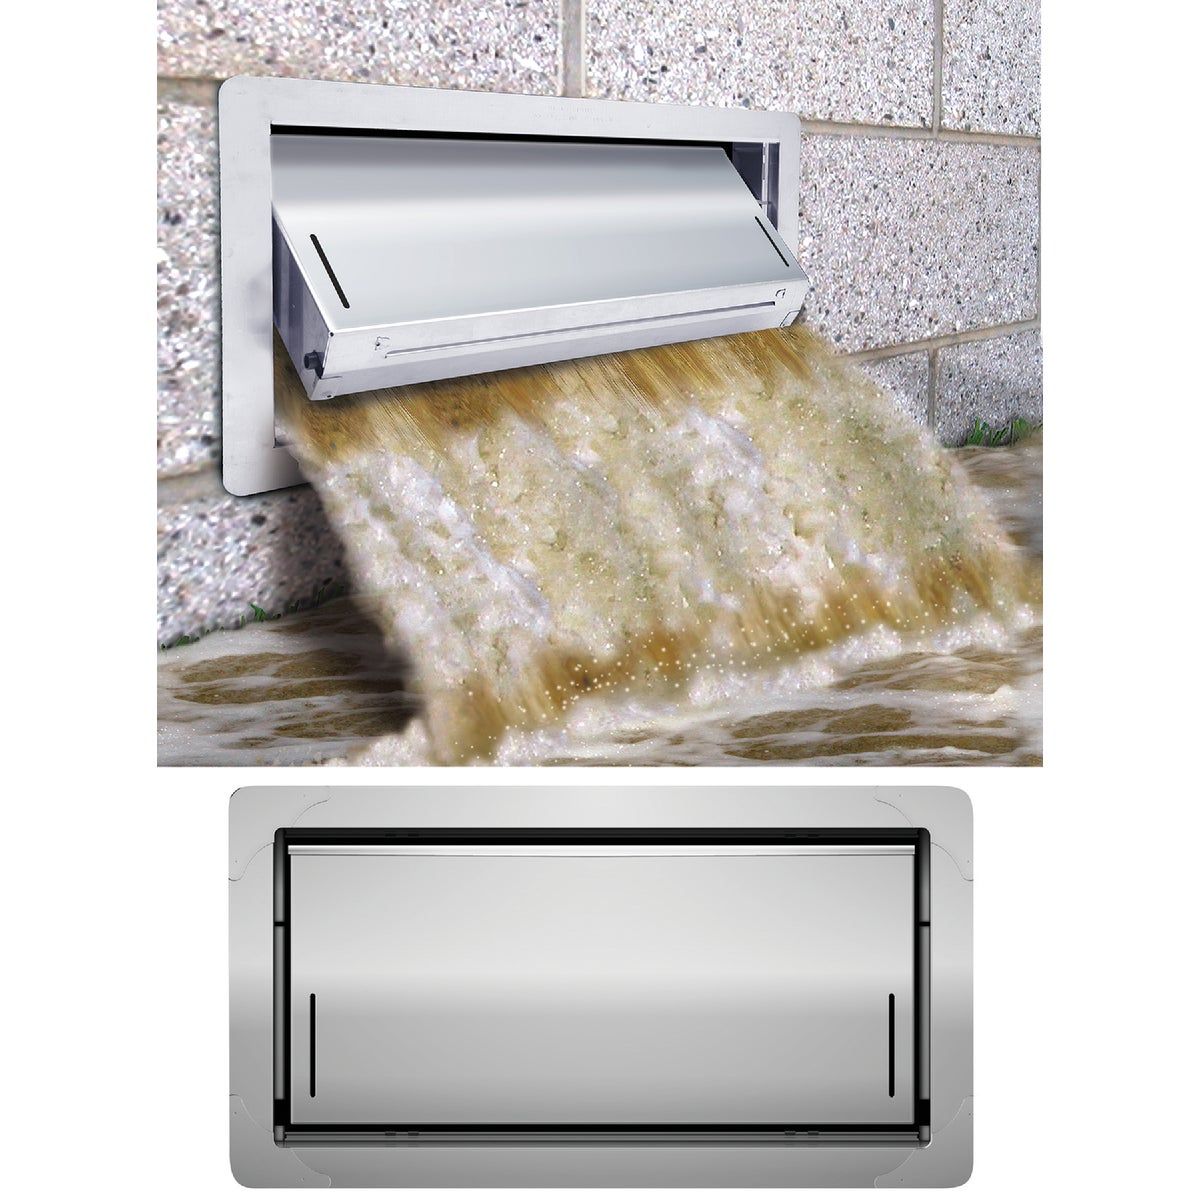 16X8 FLOOD FNDT VENT - 1540-520 by SmartVENT Products